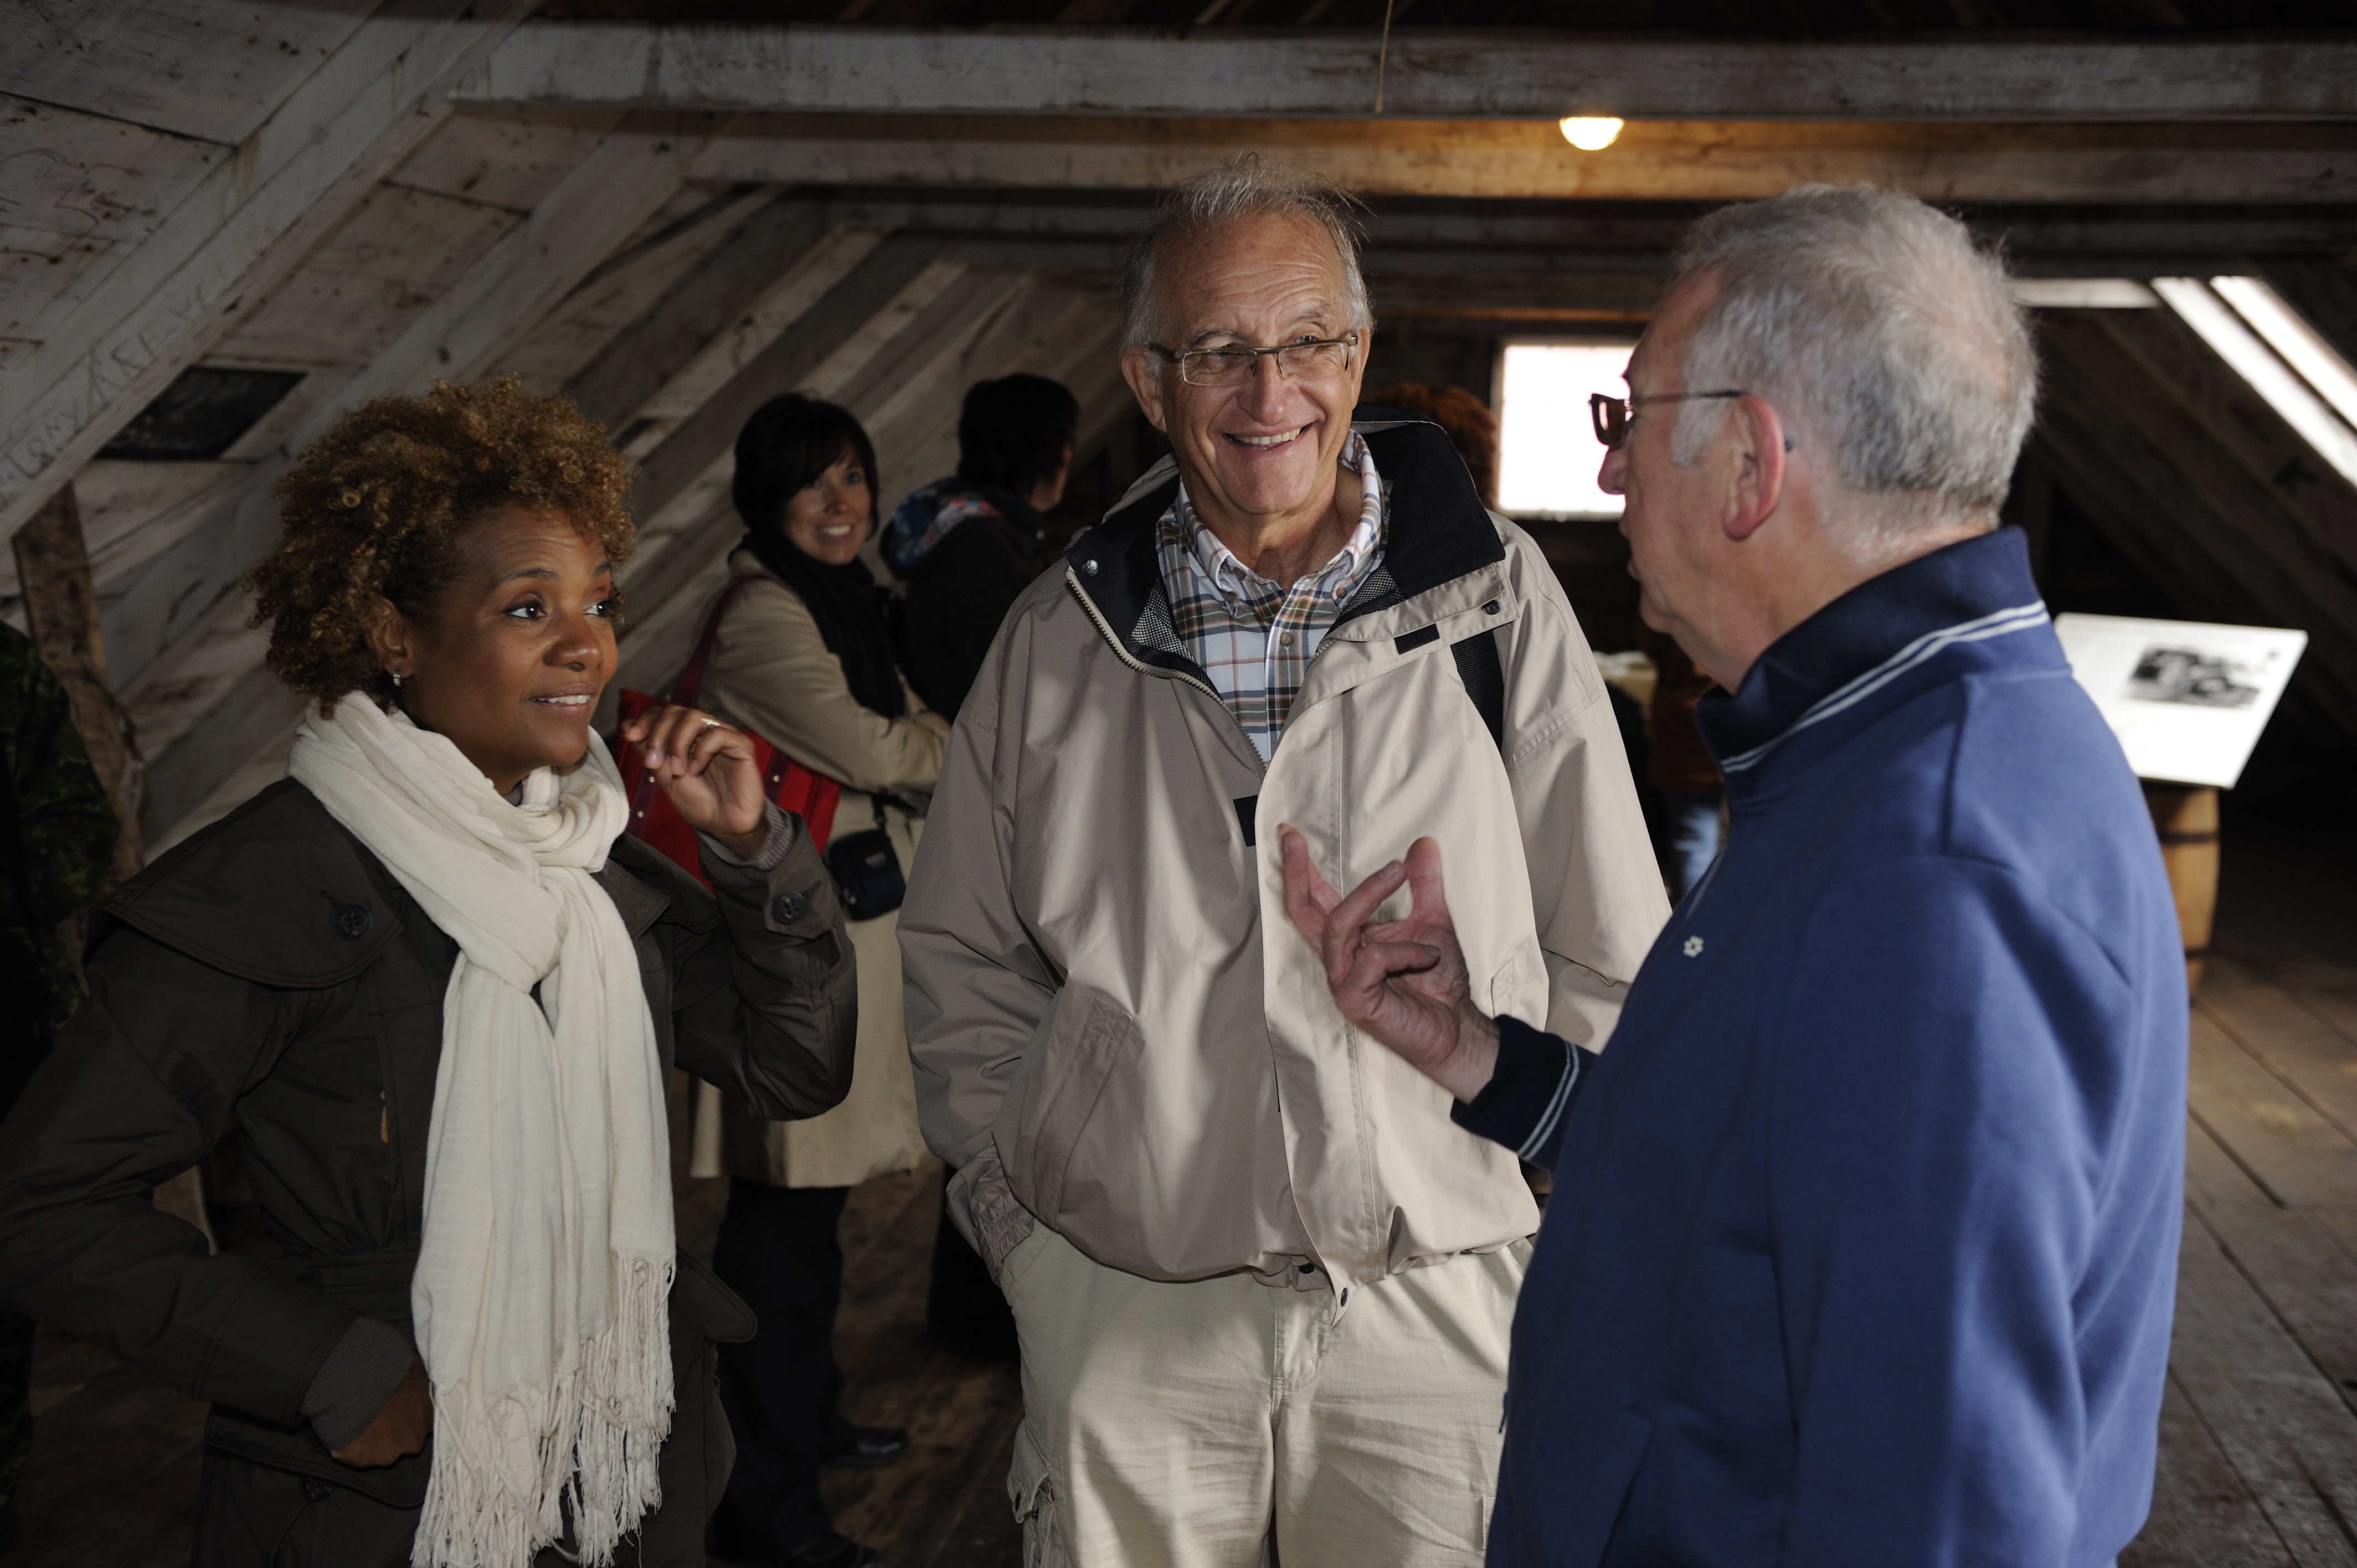 Their Excellencies were welcomed and given a tour of Battle Harbour by 